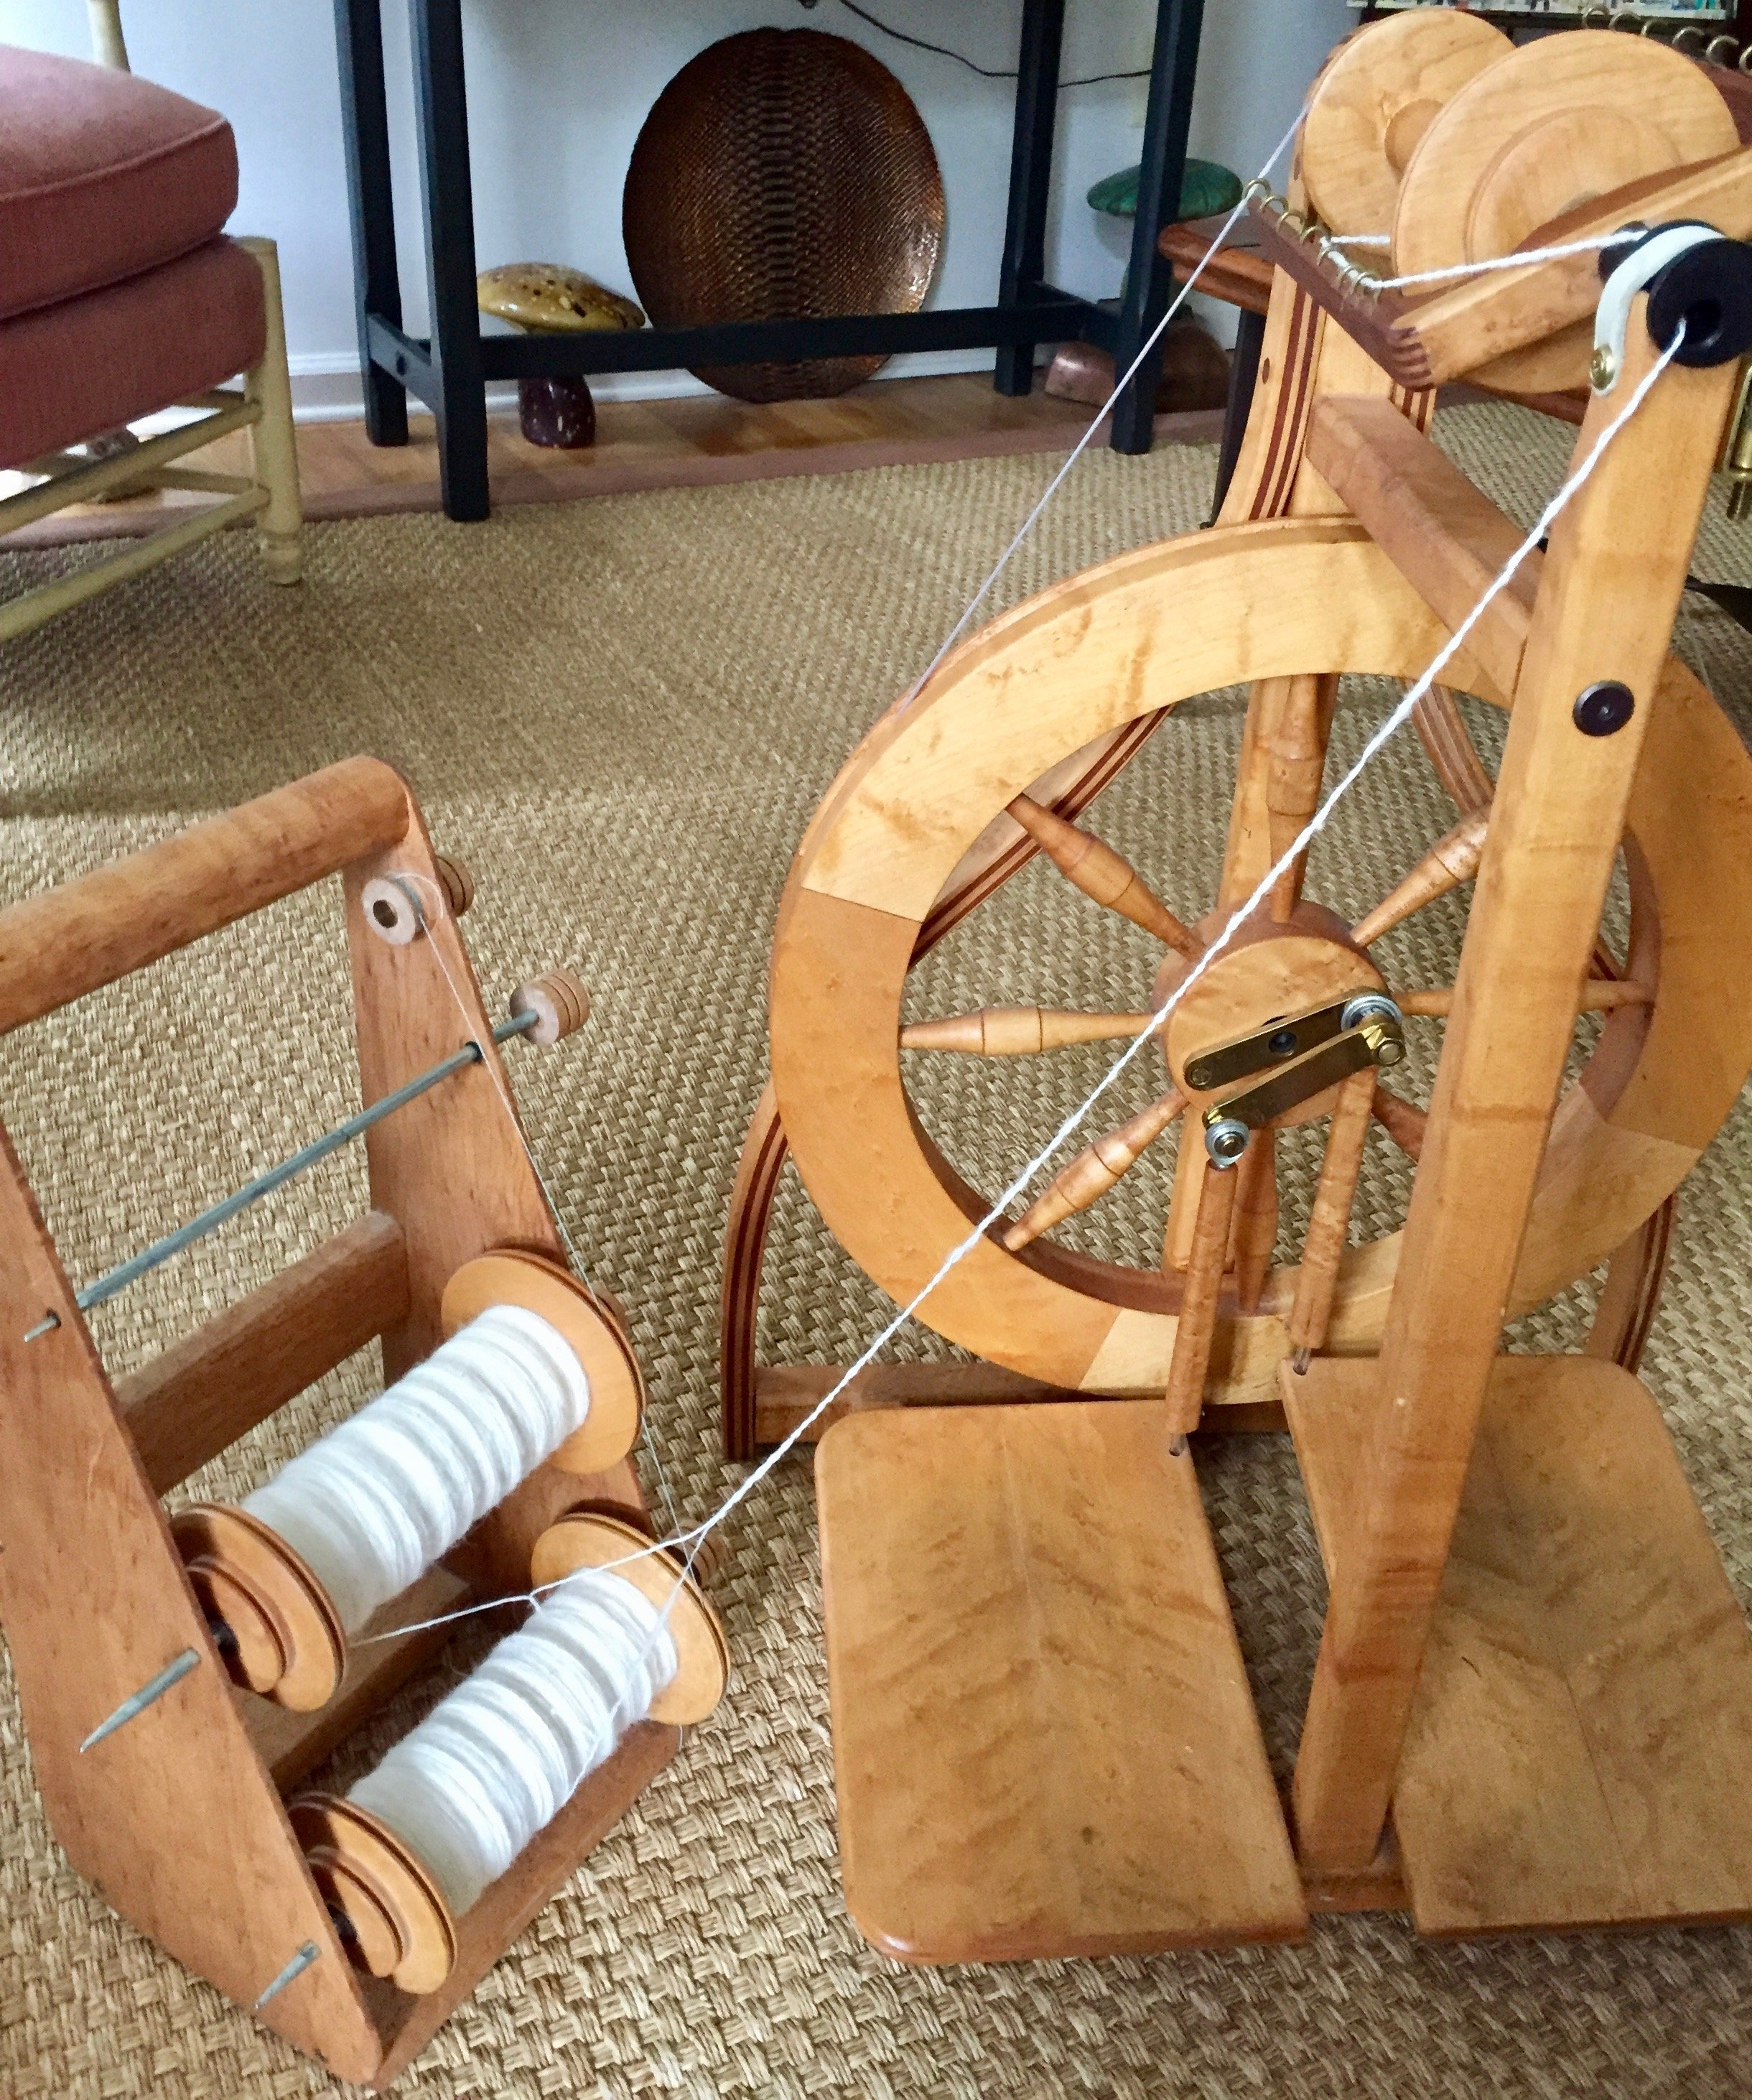 Plying Tommys Preferred Spinning 08-25-19